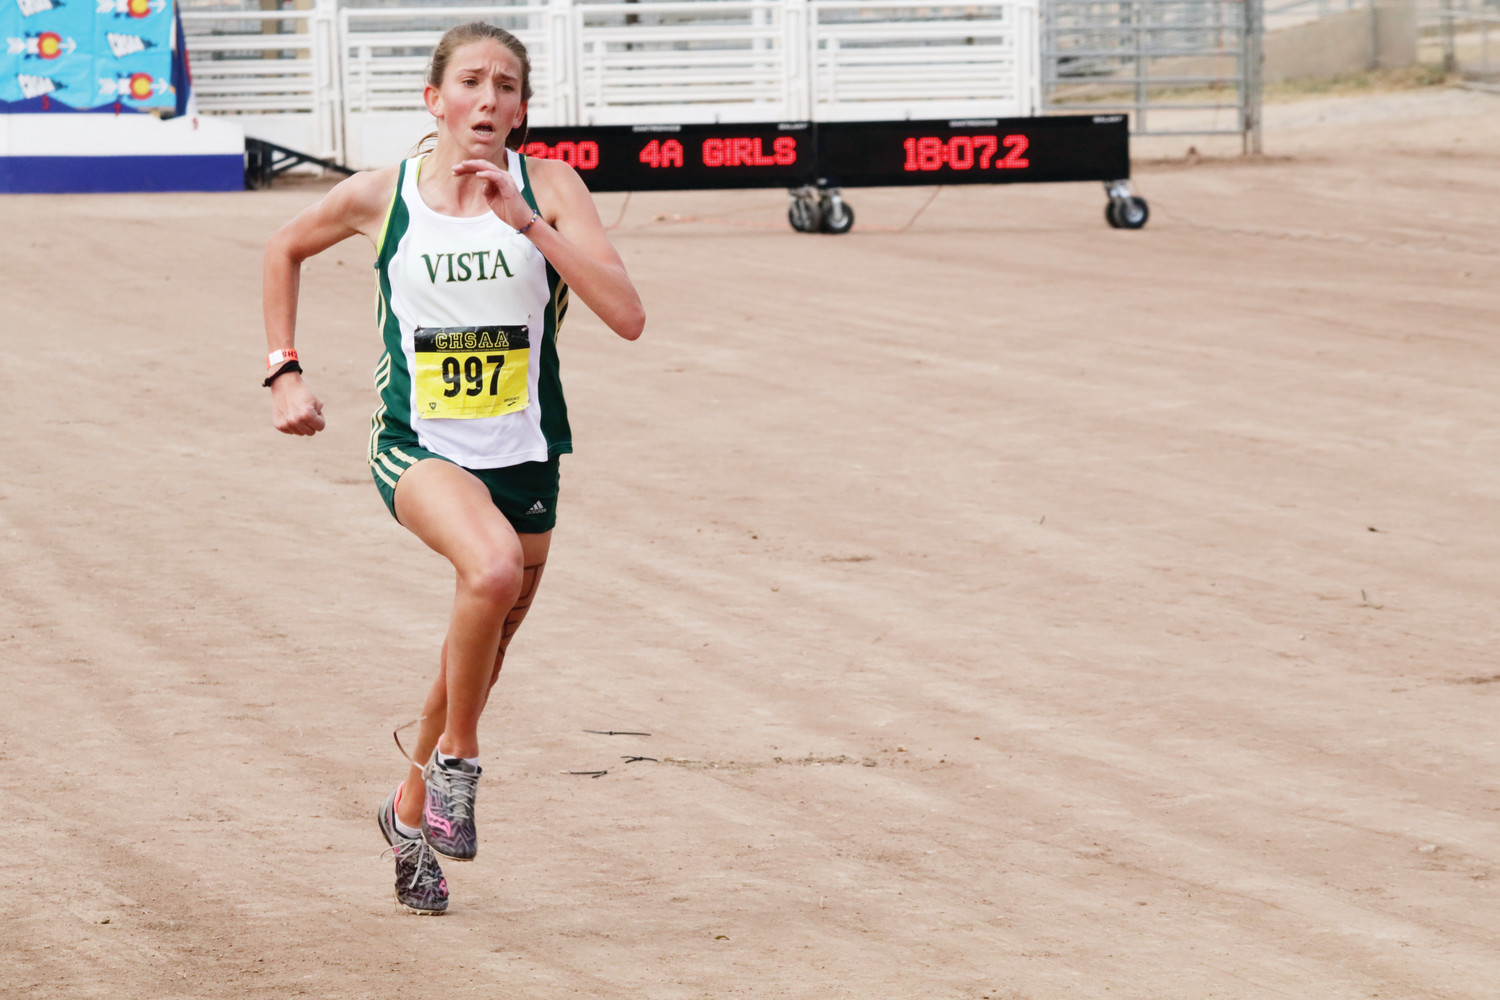 Mountain Vista's Jenna Fitzsimmons is the Colorado Community Media Girls Cross Country Runner of the Year. Photo by Tom Munds